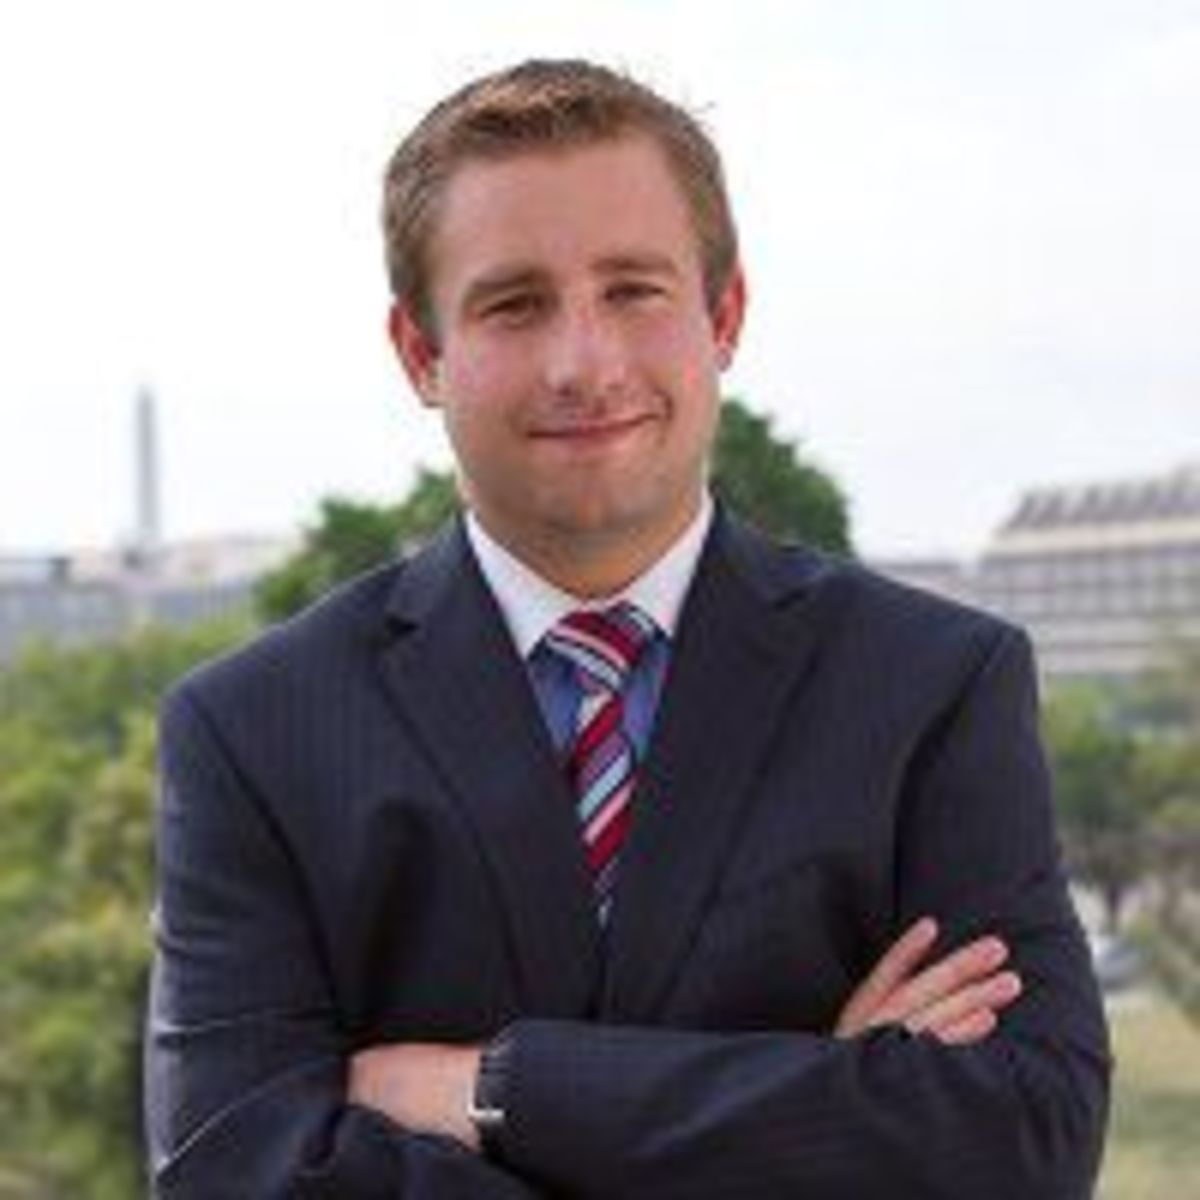 Wikileaks Strongly Implies Murdered DNC Data Director Seth Rich Was  Source for Leaked Emails